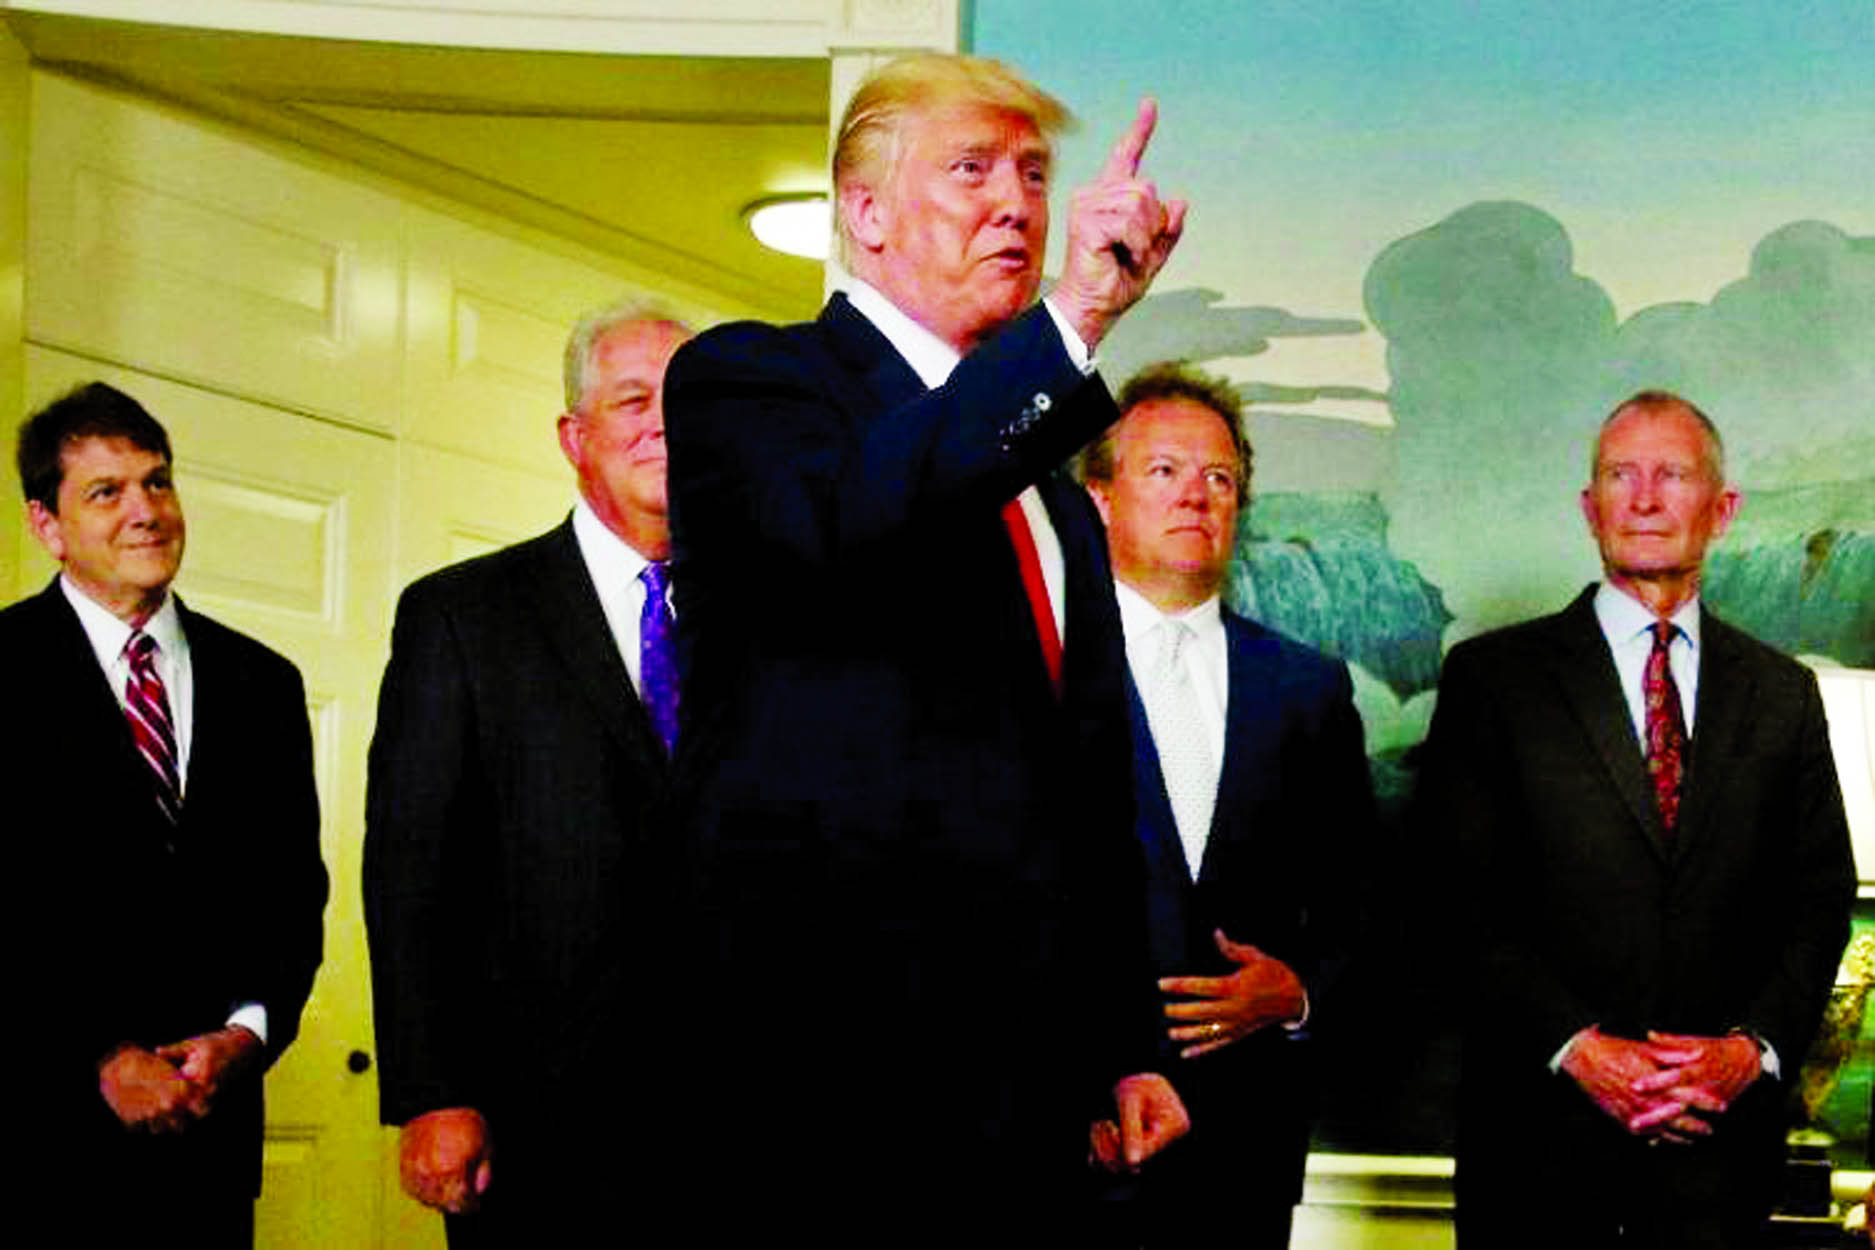 US President Donald Trump responds to a reporter's question after signing a memorandum at the White House in Washington, US.